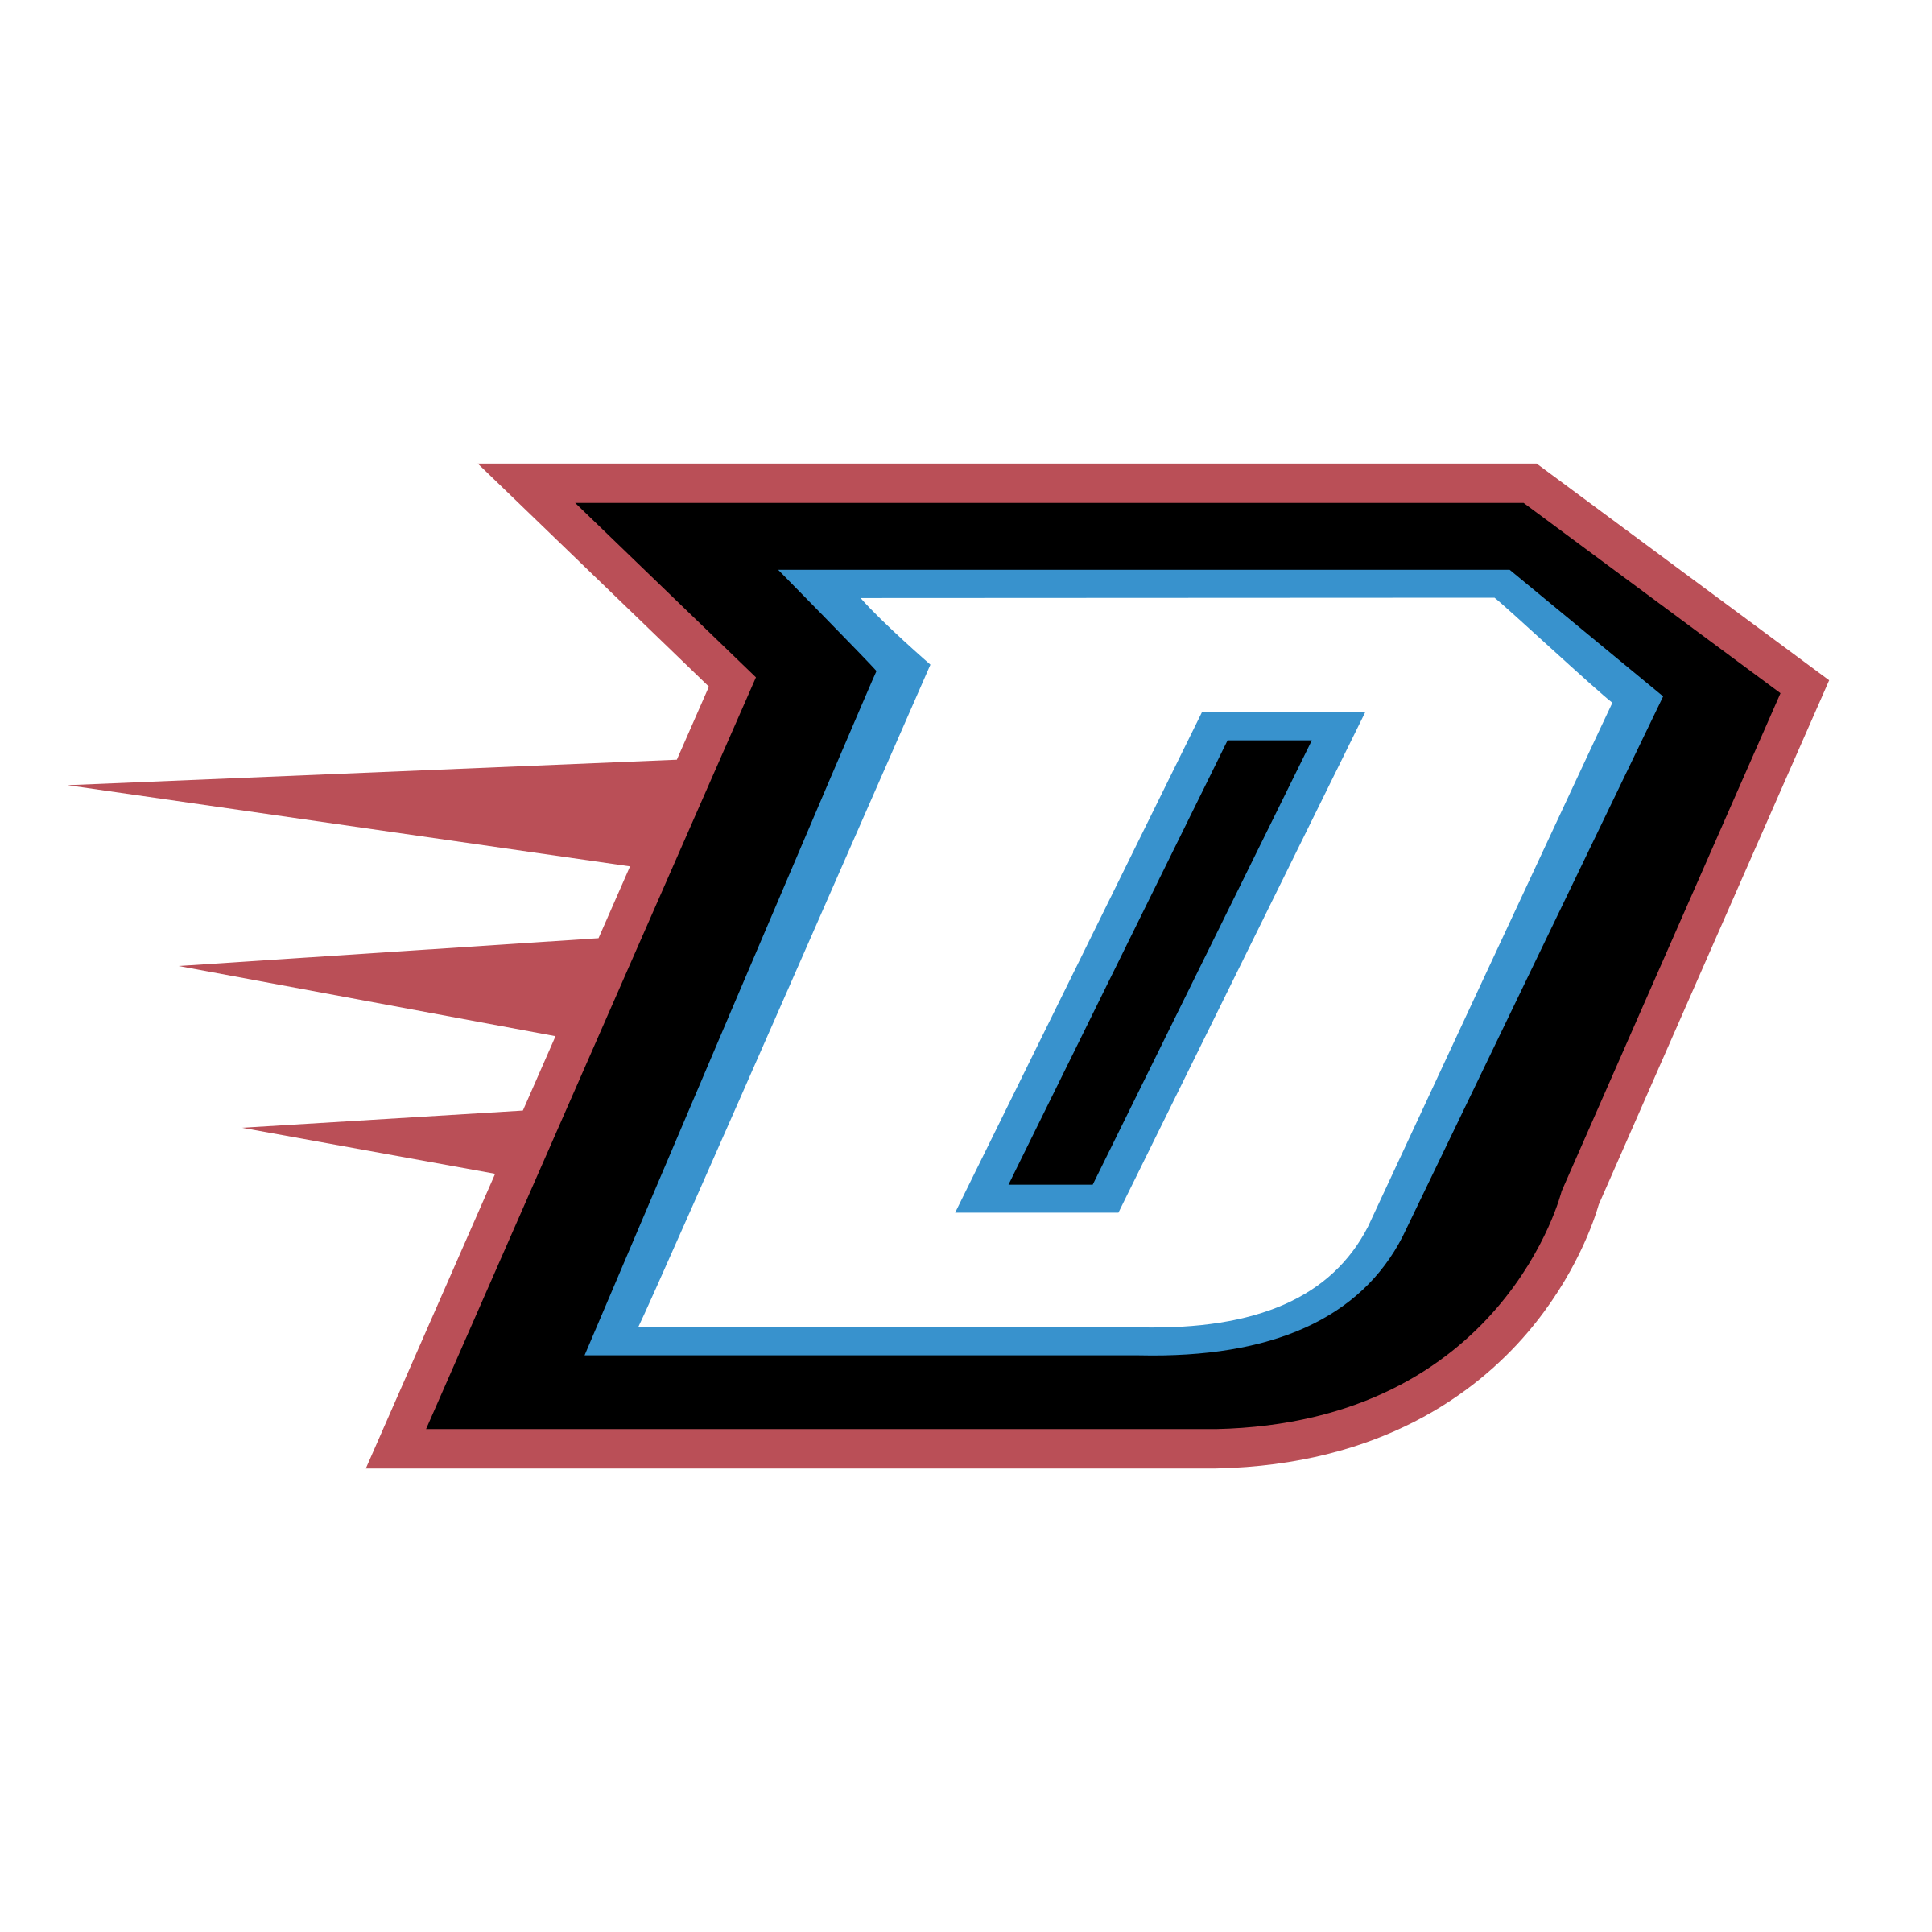 Depaul university clipart image black and white library Depaul Logo Png (+) - Free Download   fourjay.org image black and white library